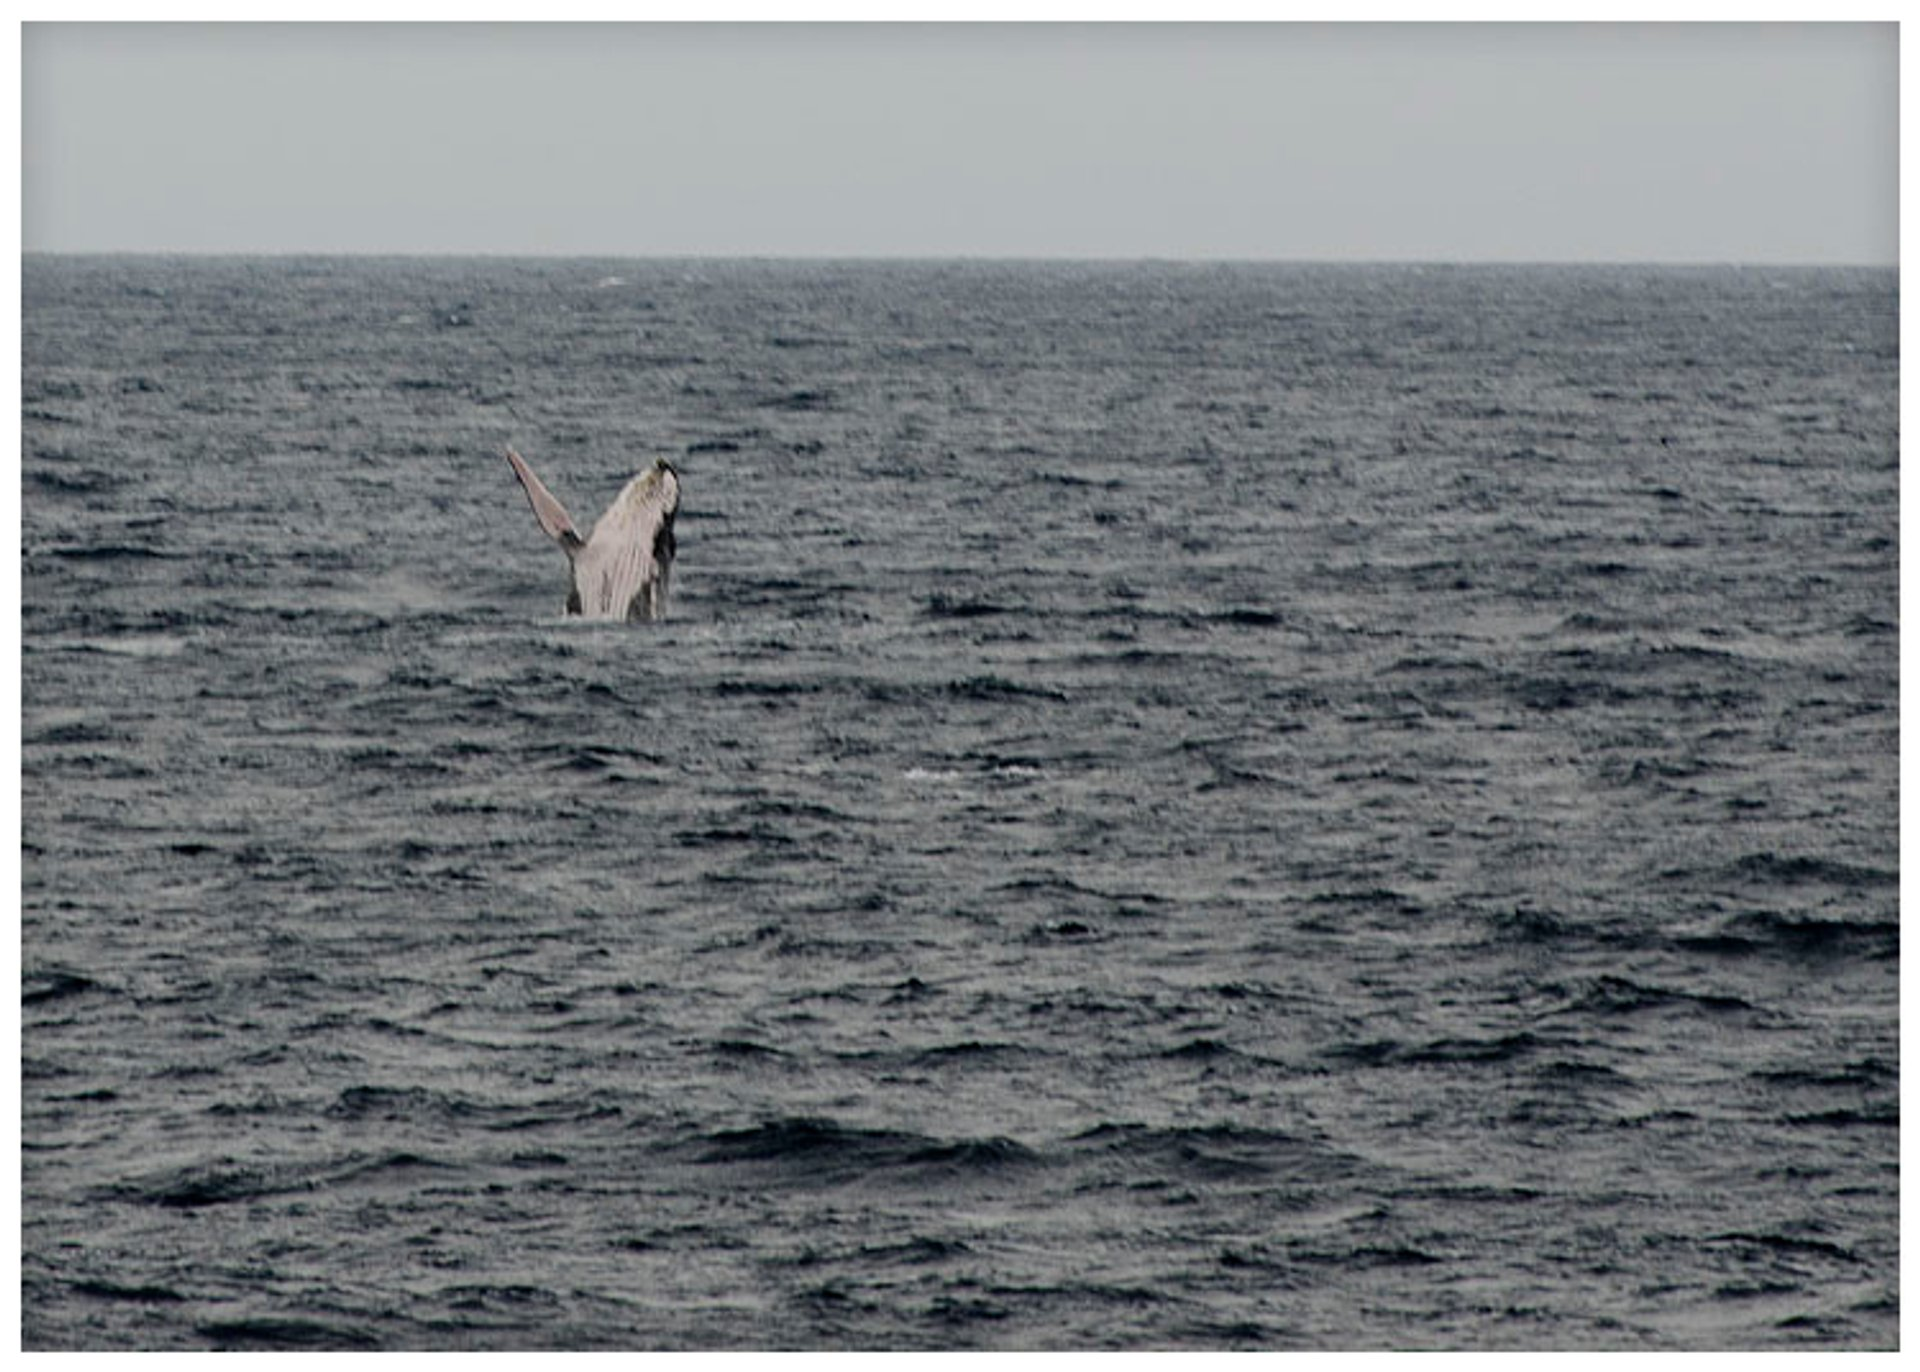 Humpback Whale Watching Season in Zanzibar - Best Time